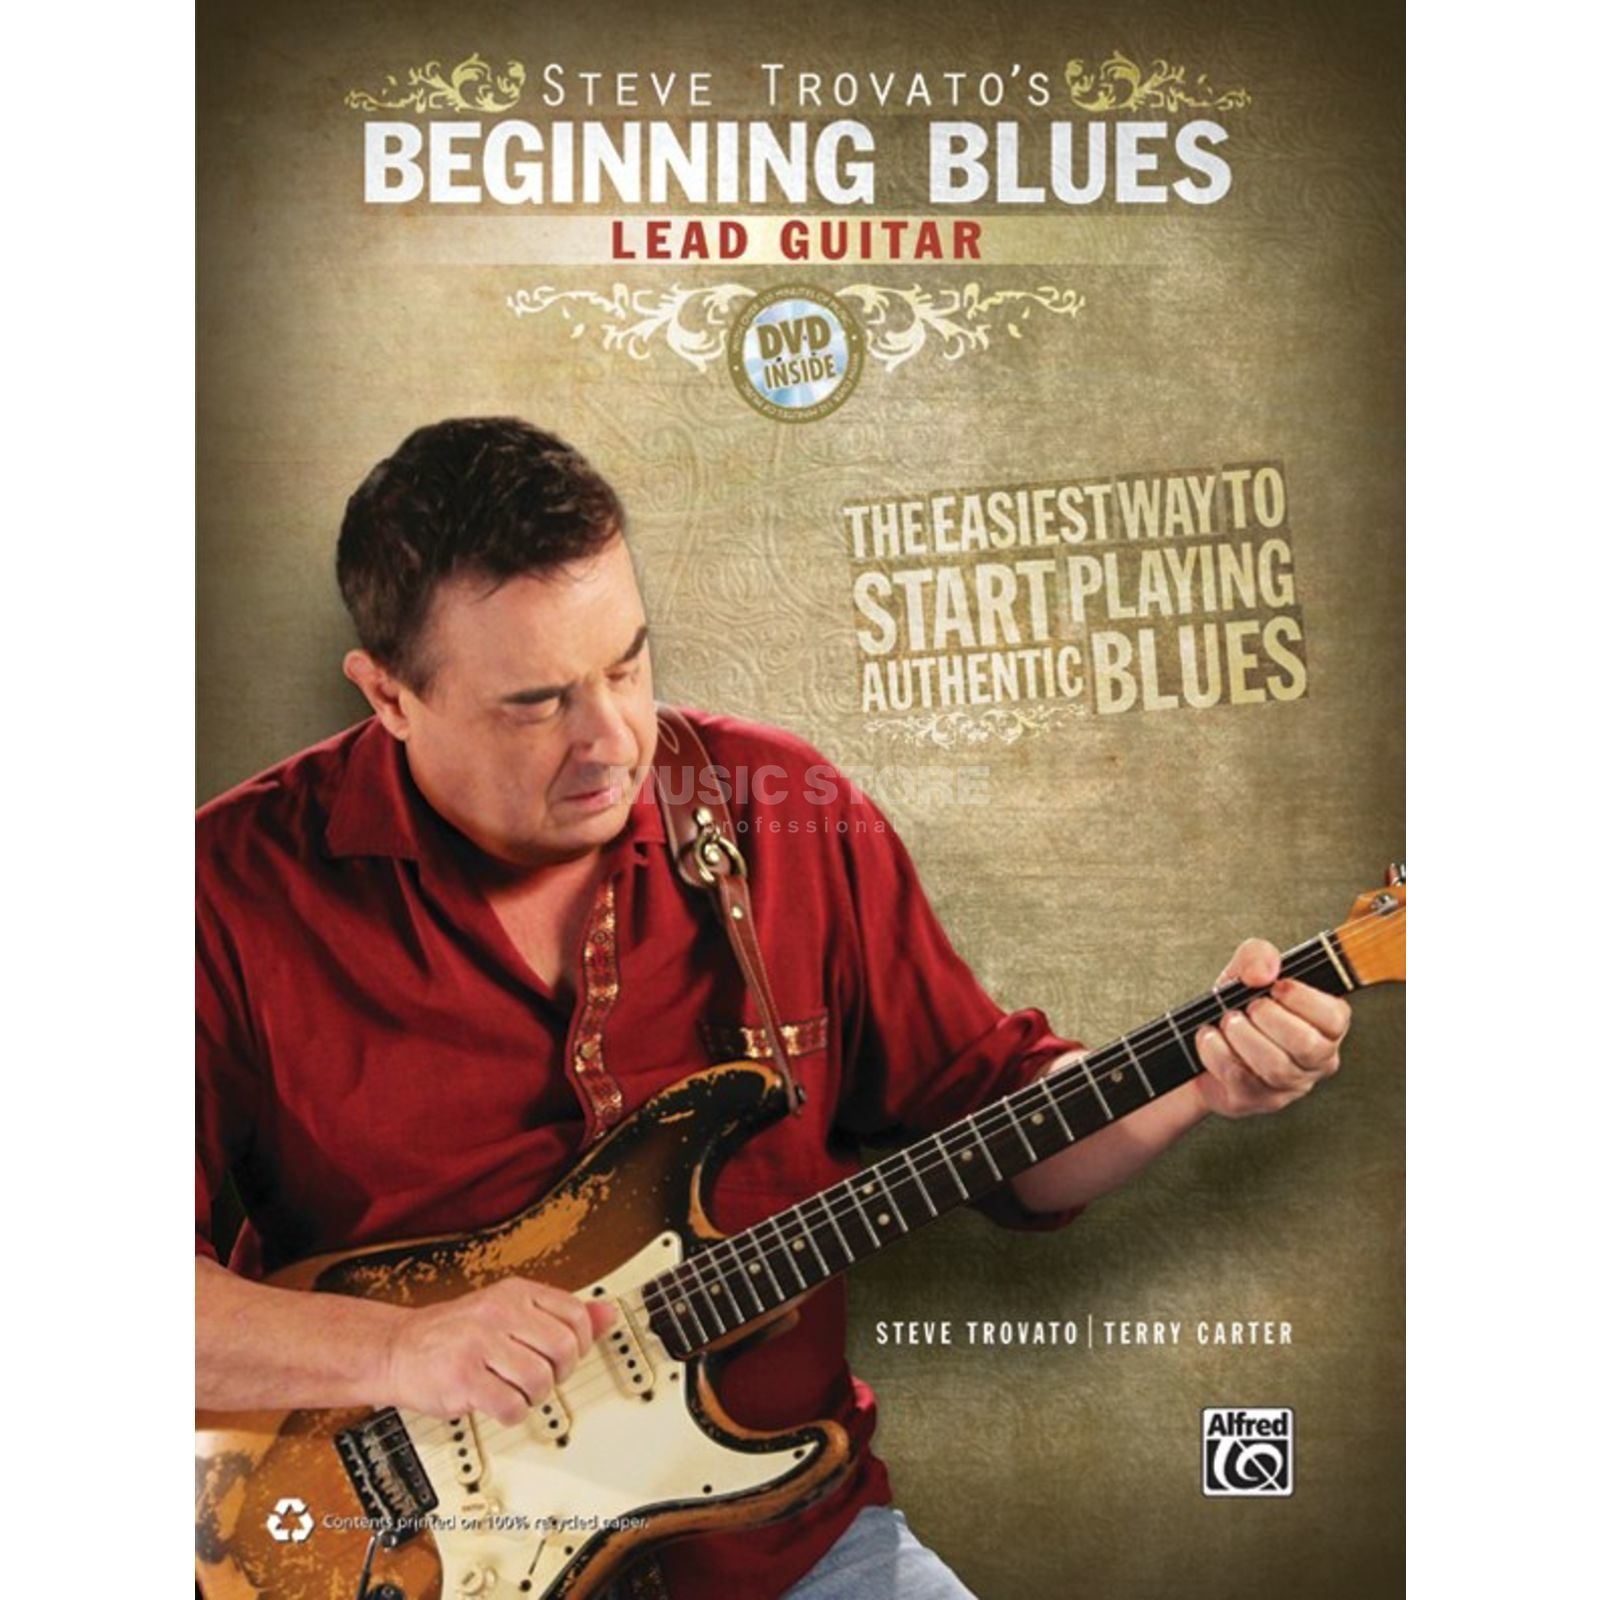 Alfred Music Beginning Blues Lead Guitar Steve Trovato inkl. DVD Produktbild